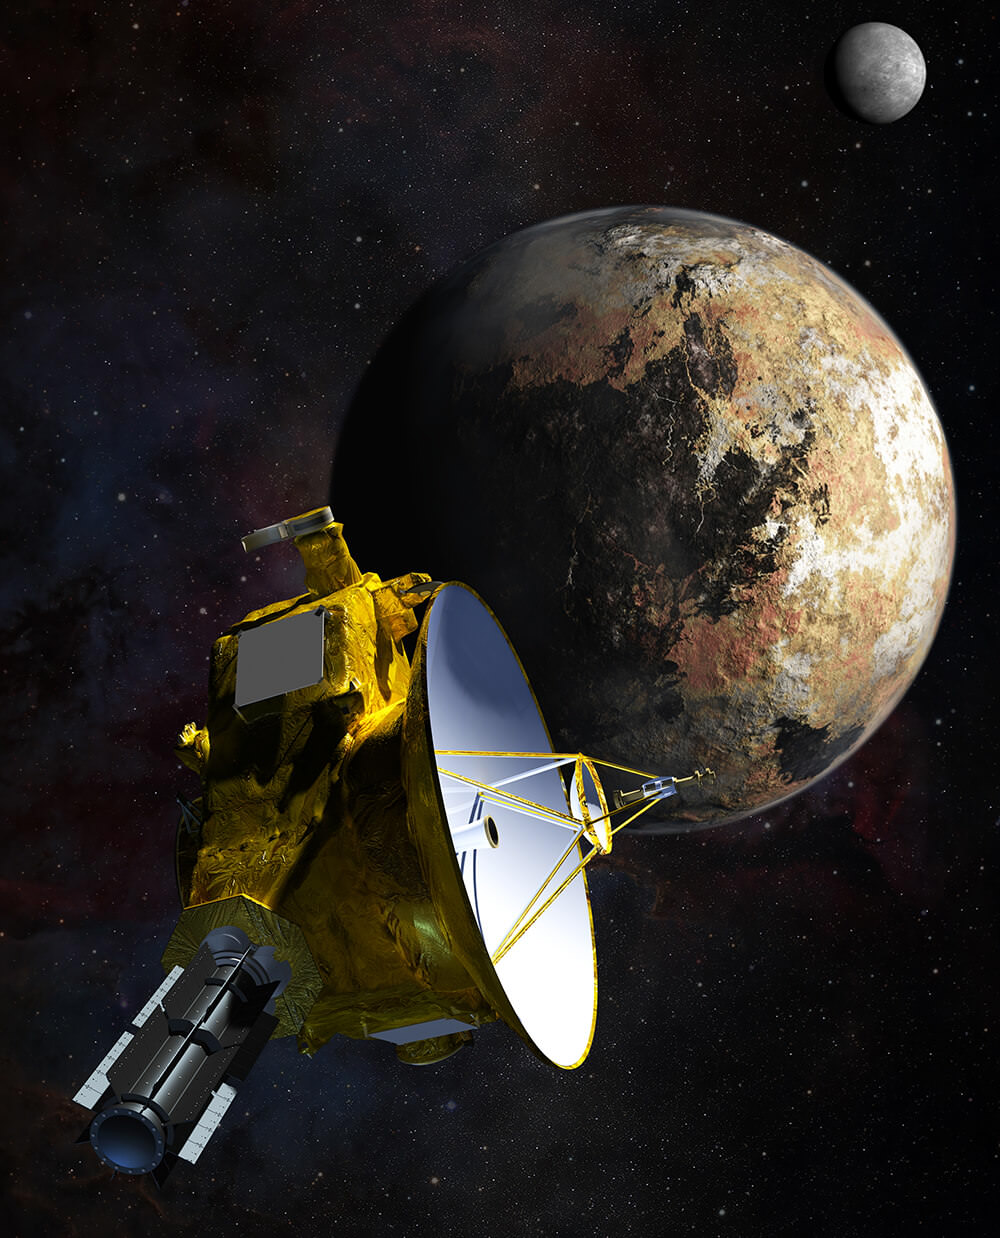 Artist's impression of New Horizons' close encounter with the Pluto–Charon system. - Image Credit: NASA/JHU APL/SwRI/Steve Gribben